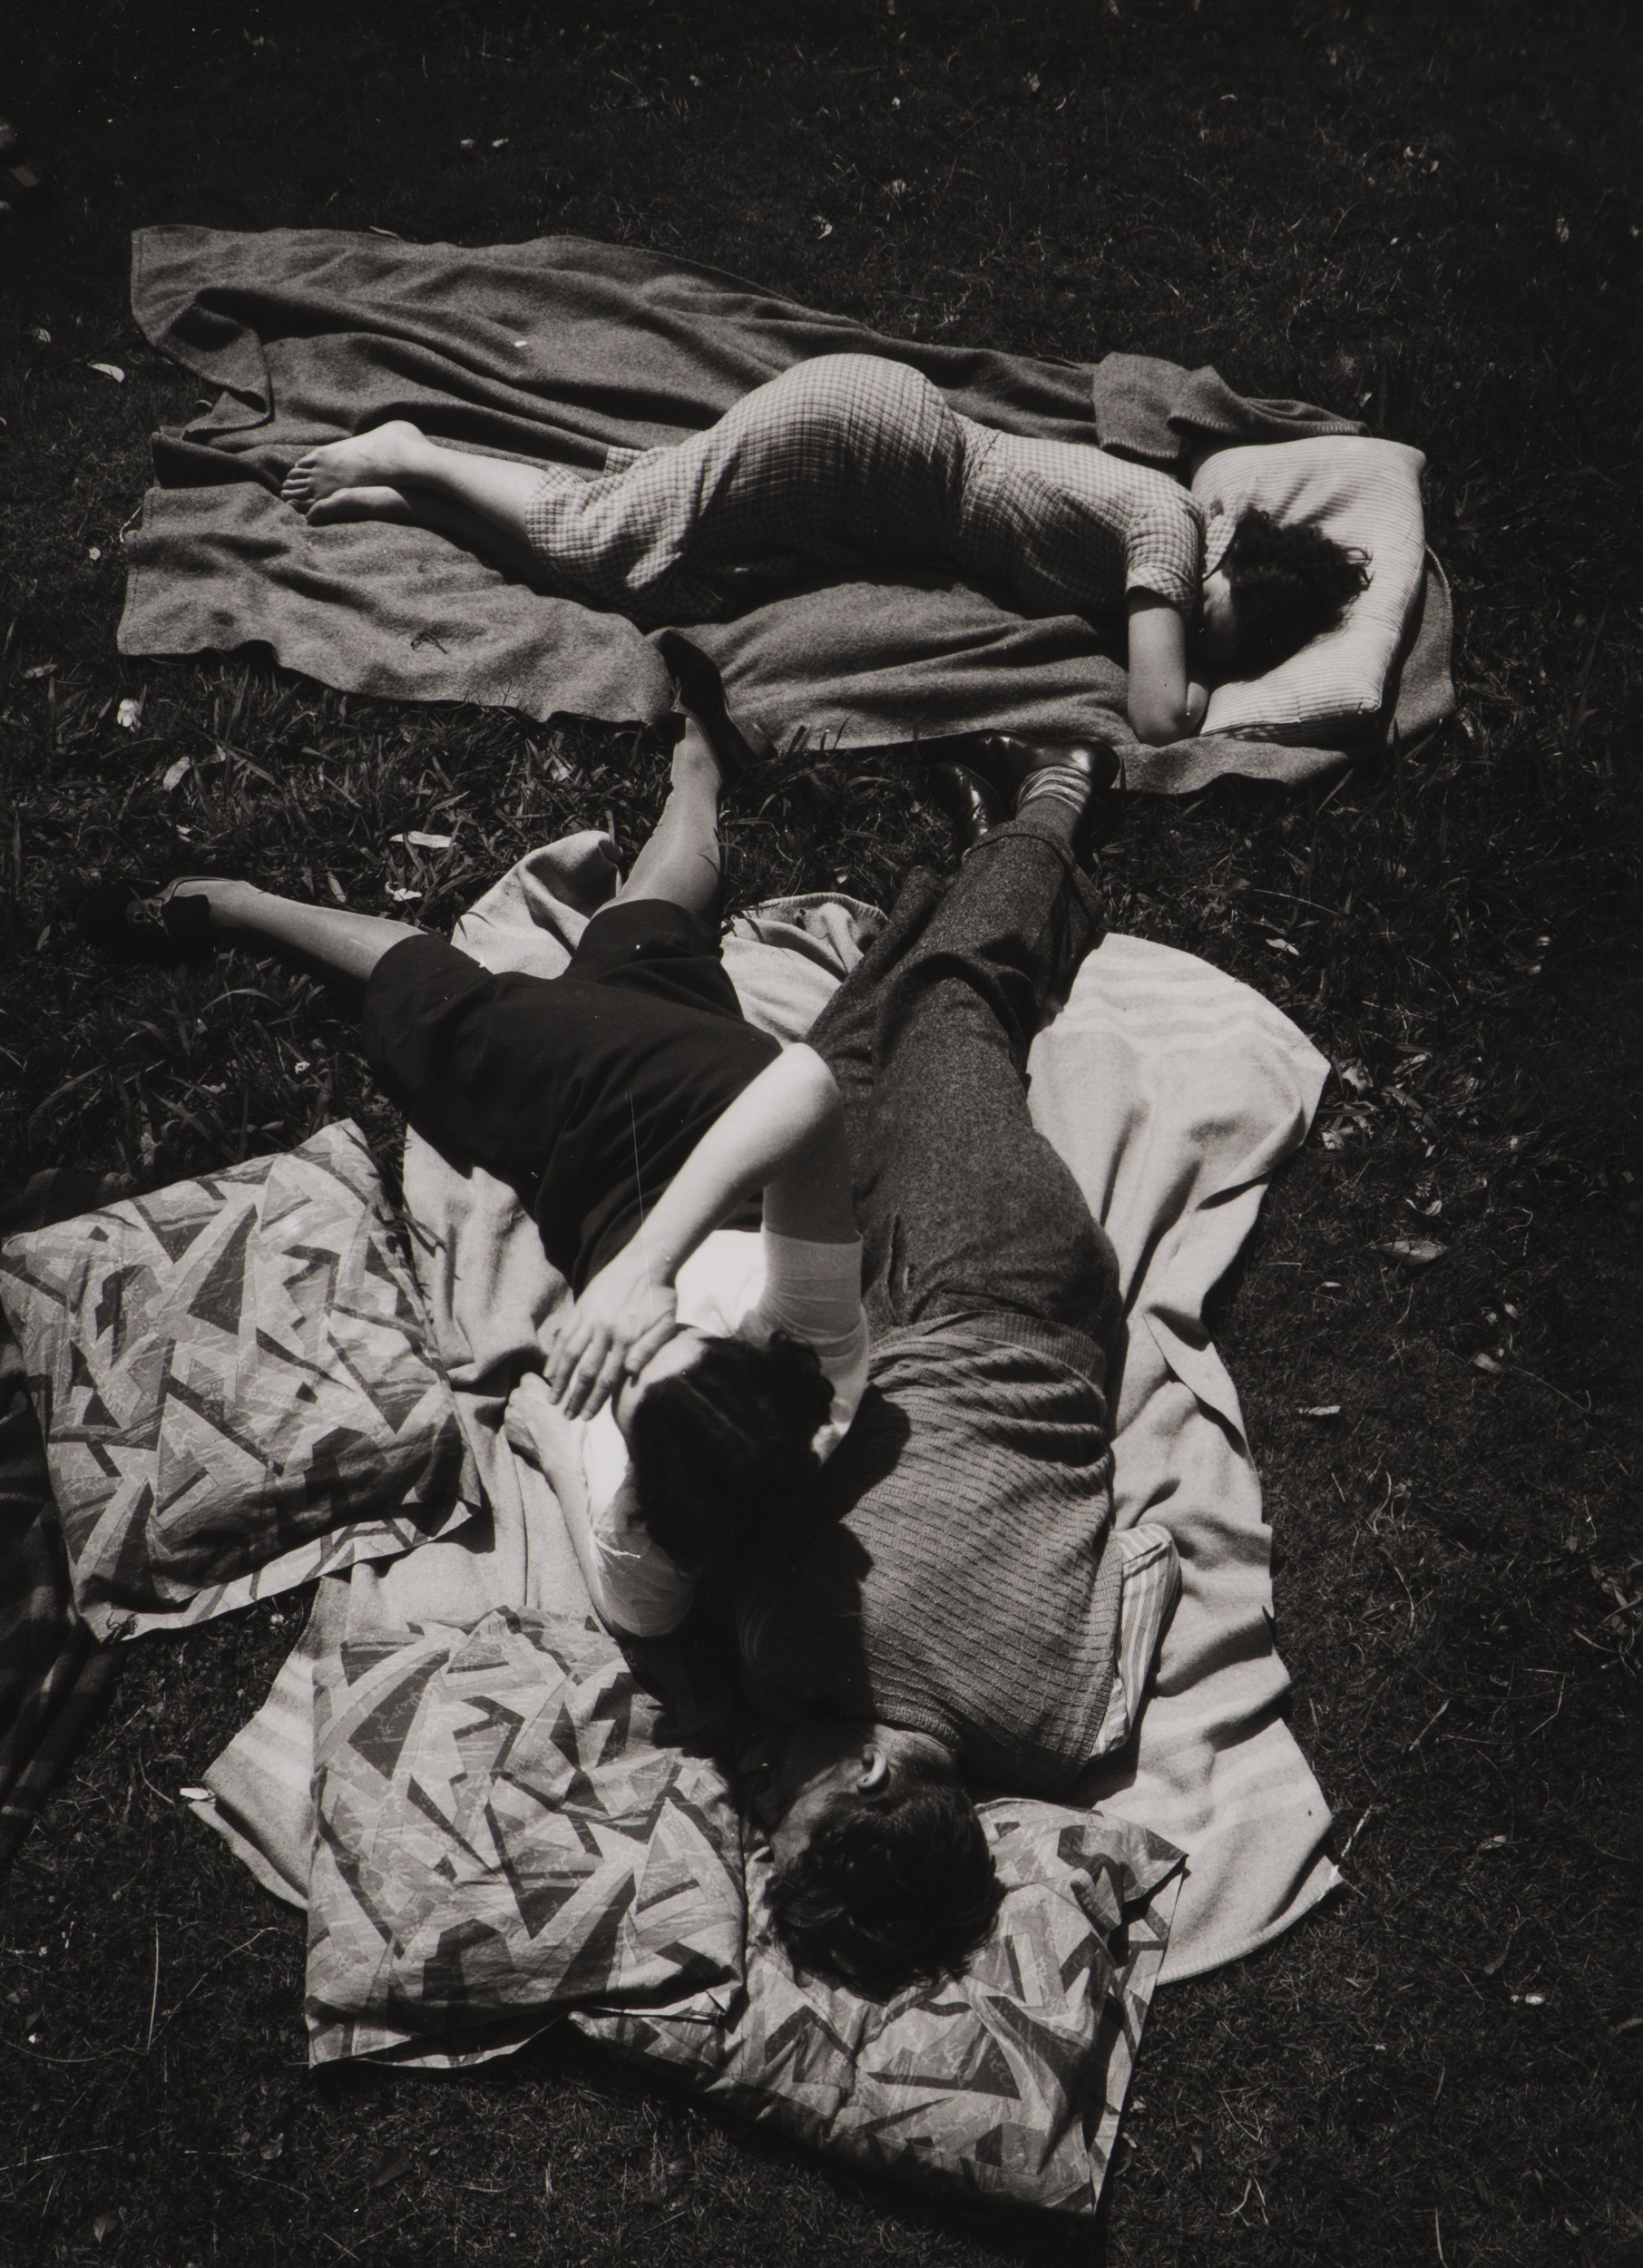 Weekend, 1940, by Max Dupain